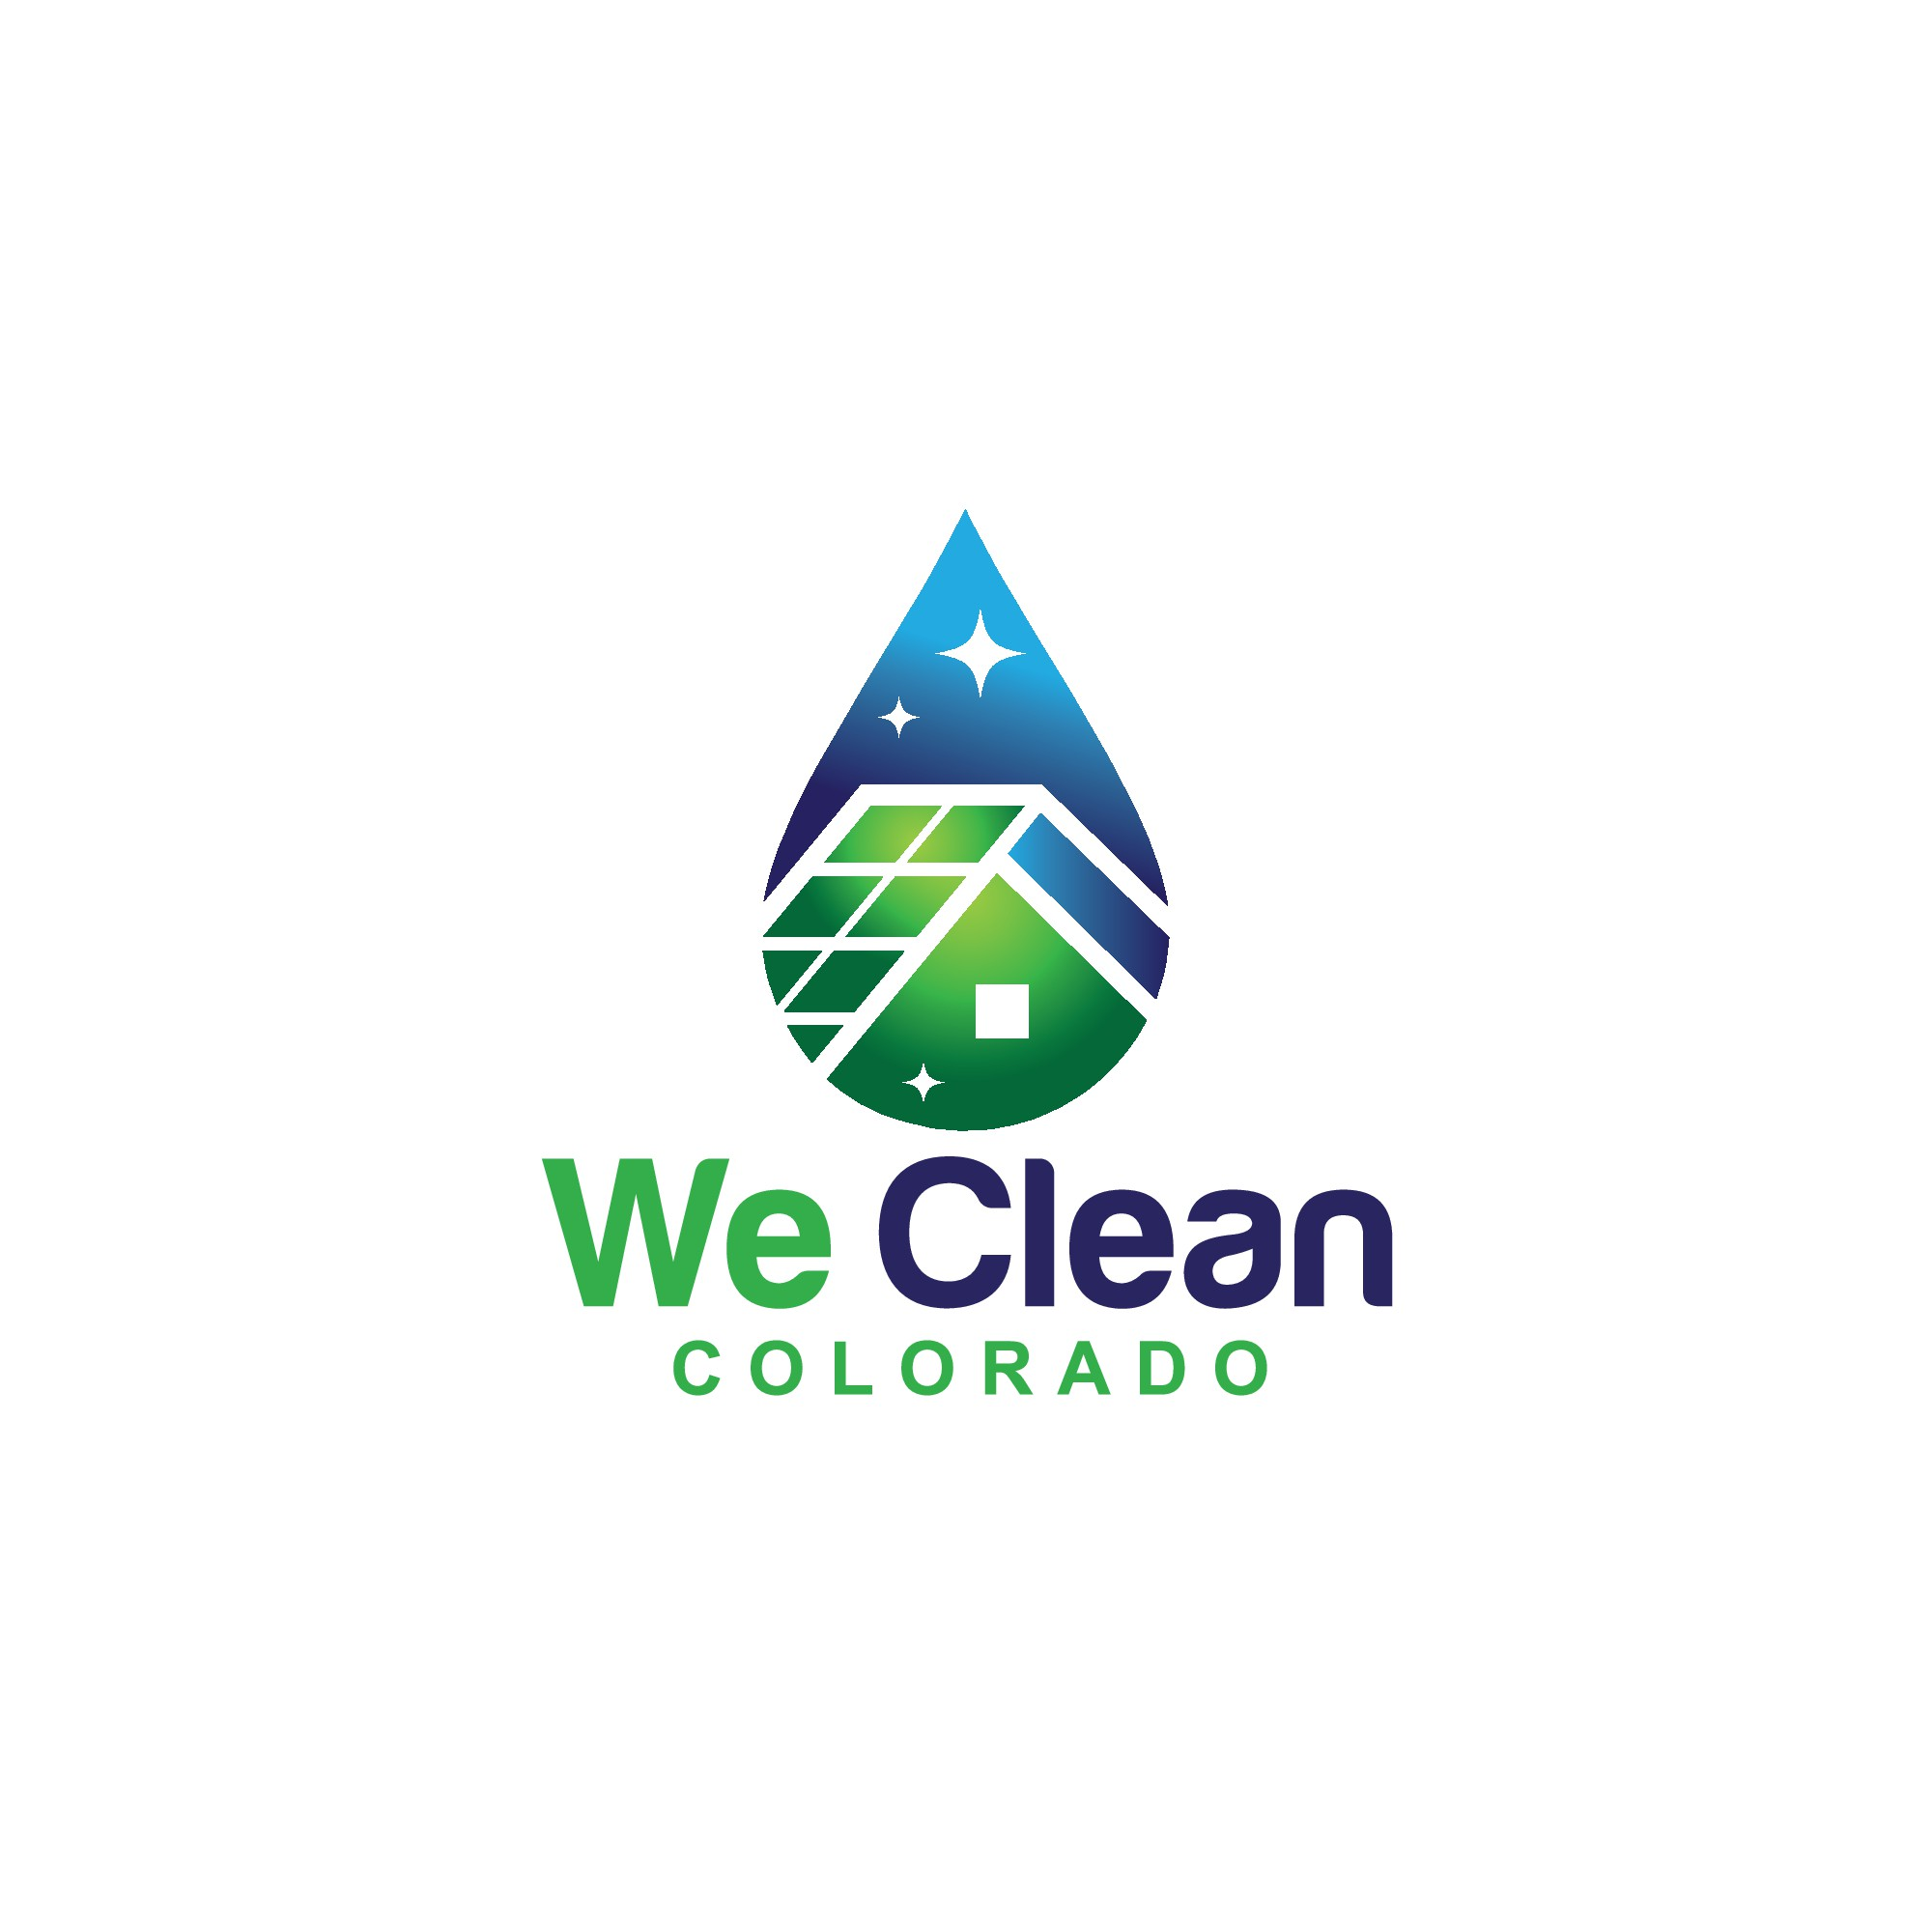 We need a power new logo for our cleaning company